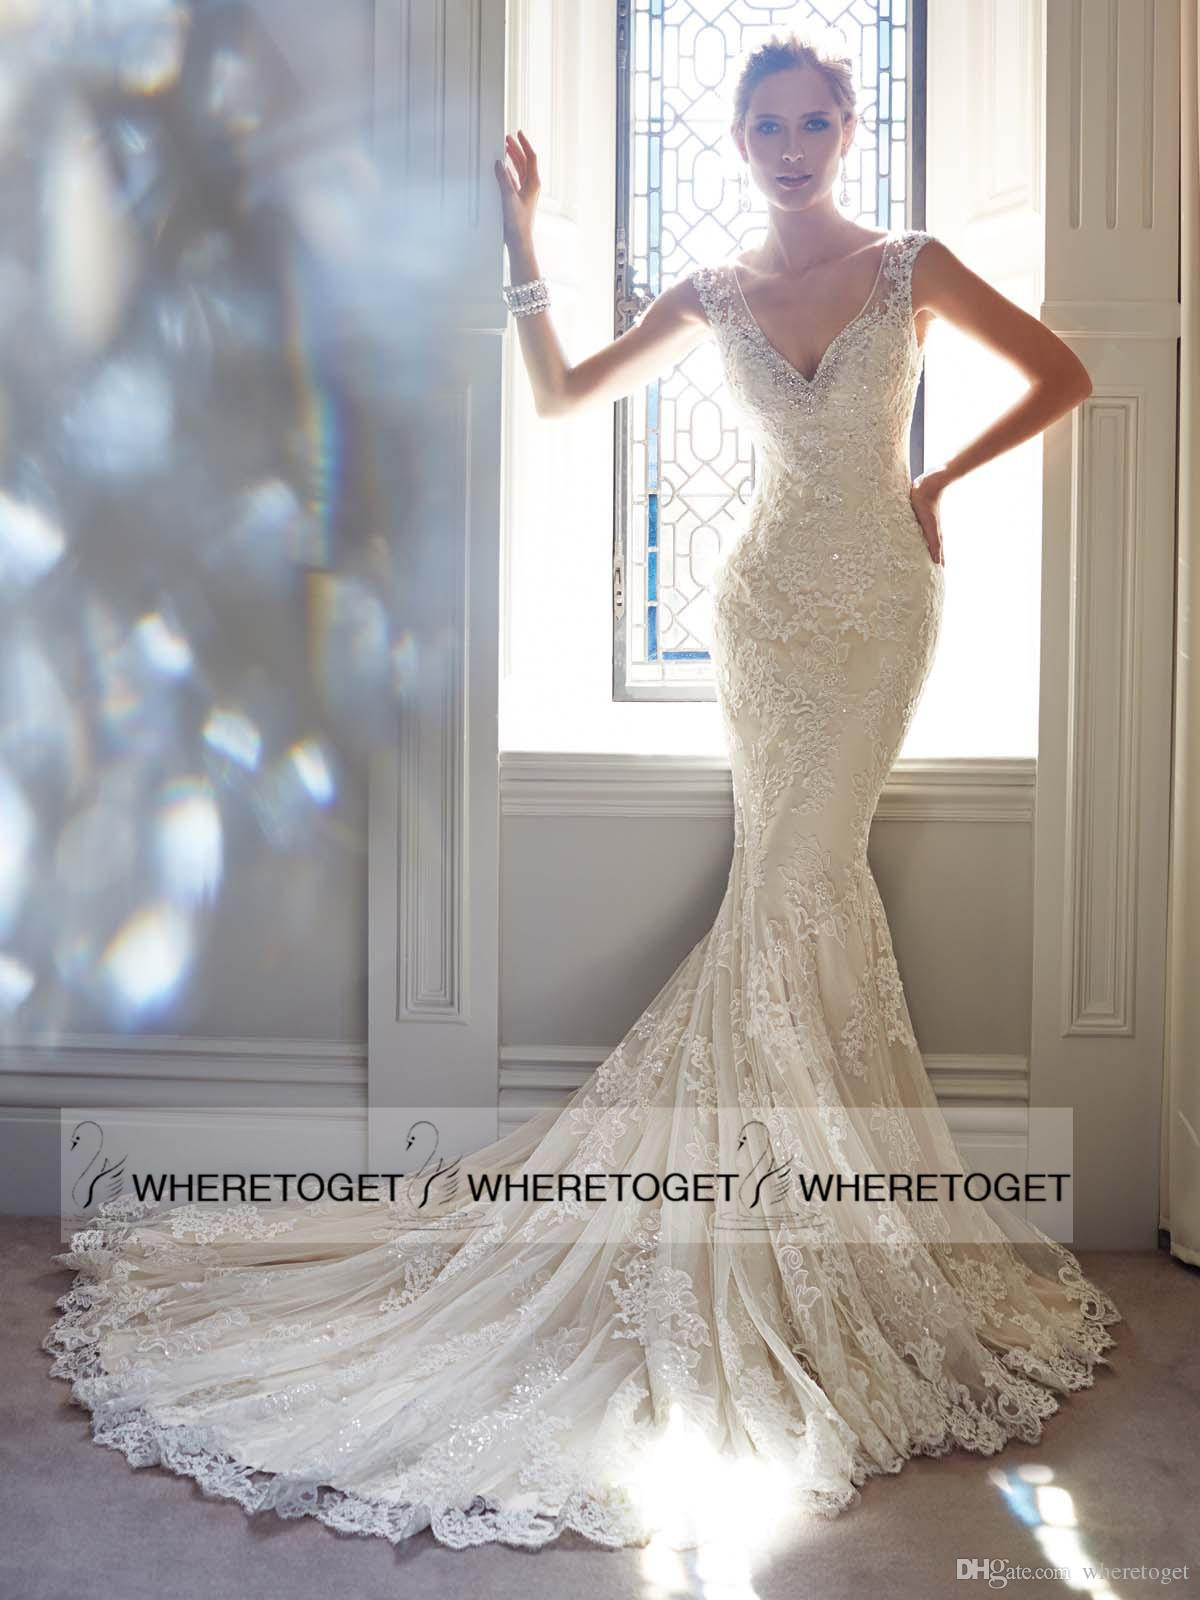 Charming slim mermaid trumpet v neck wedding dresses bodycon sheer back sleeveless bridal gowns lace court train vestidos de novia 2015 online with $196.96/piece on wheretoget's store